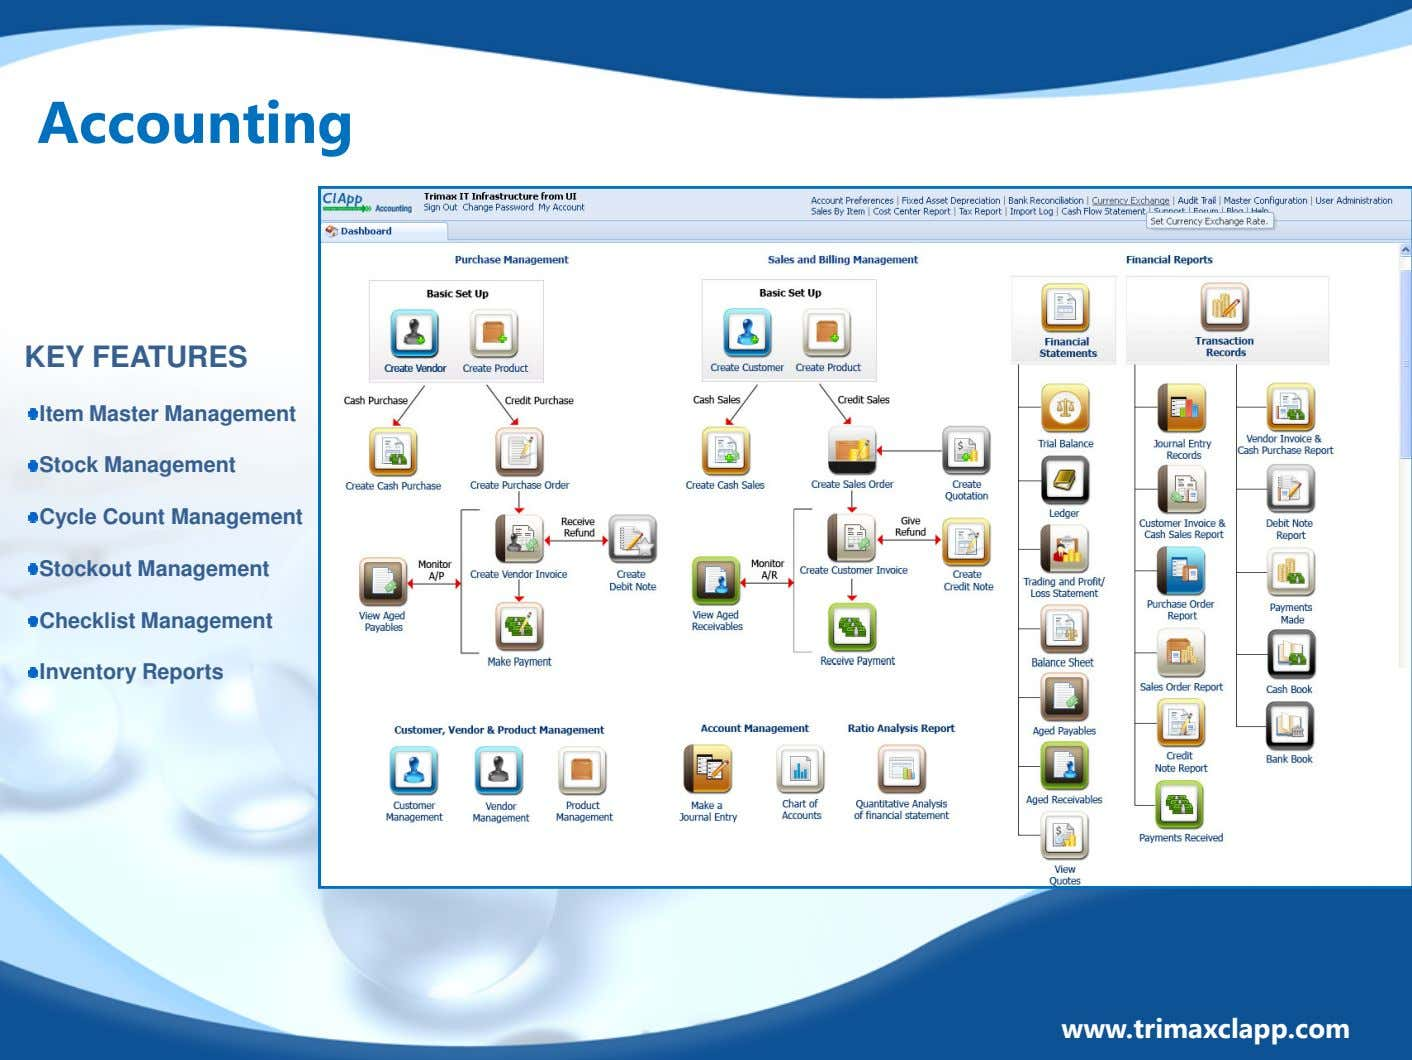 Accounting KEY FEATURES Item Master Management Stock Management Cycle Count Management Stockout Management Checklist